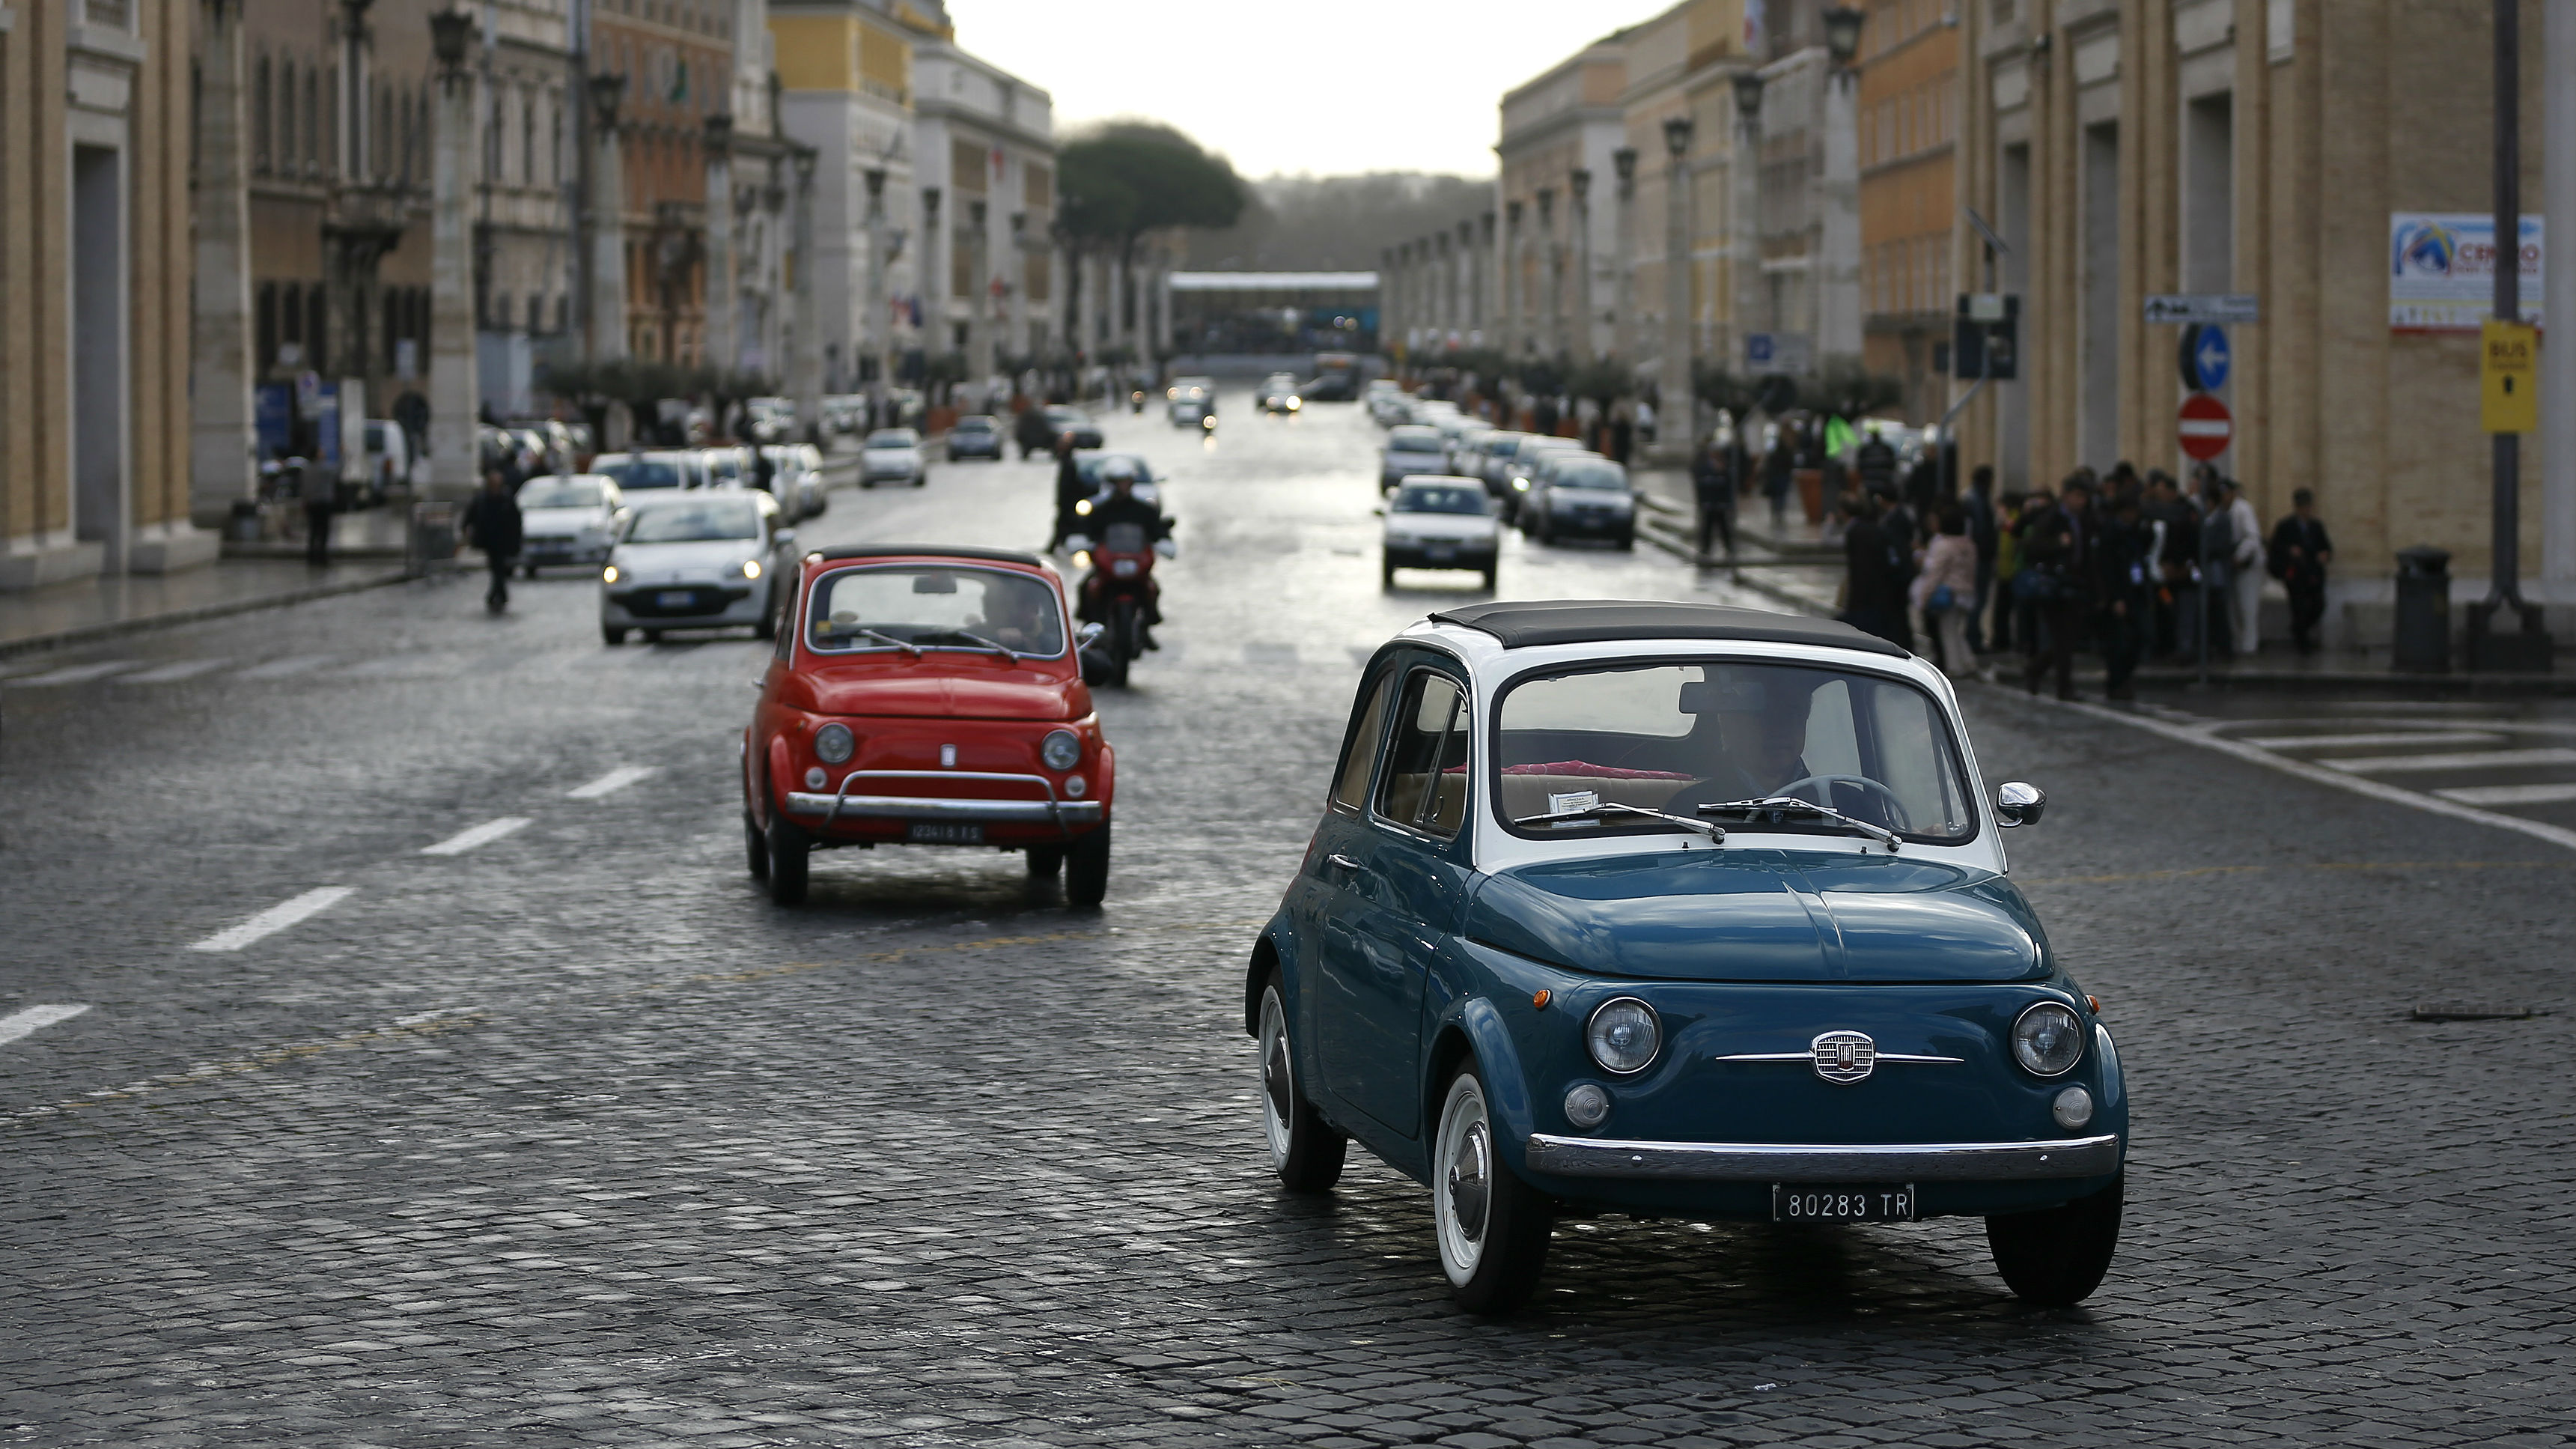 Cars drive on Via della Conciliazione in Rome near Saint Peter's Square at the Vatican, March 11, 2013. Roman Catholic Cardinals will begin their conclave inside the Vatican's Sistine Chapel on Tuesday to elect a new pope. REUTERS/Paul Hanna (ITALY - Tags: RELIGION)